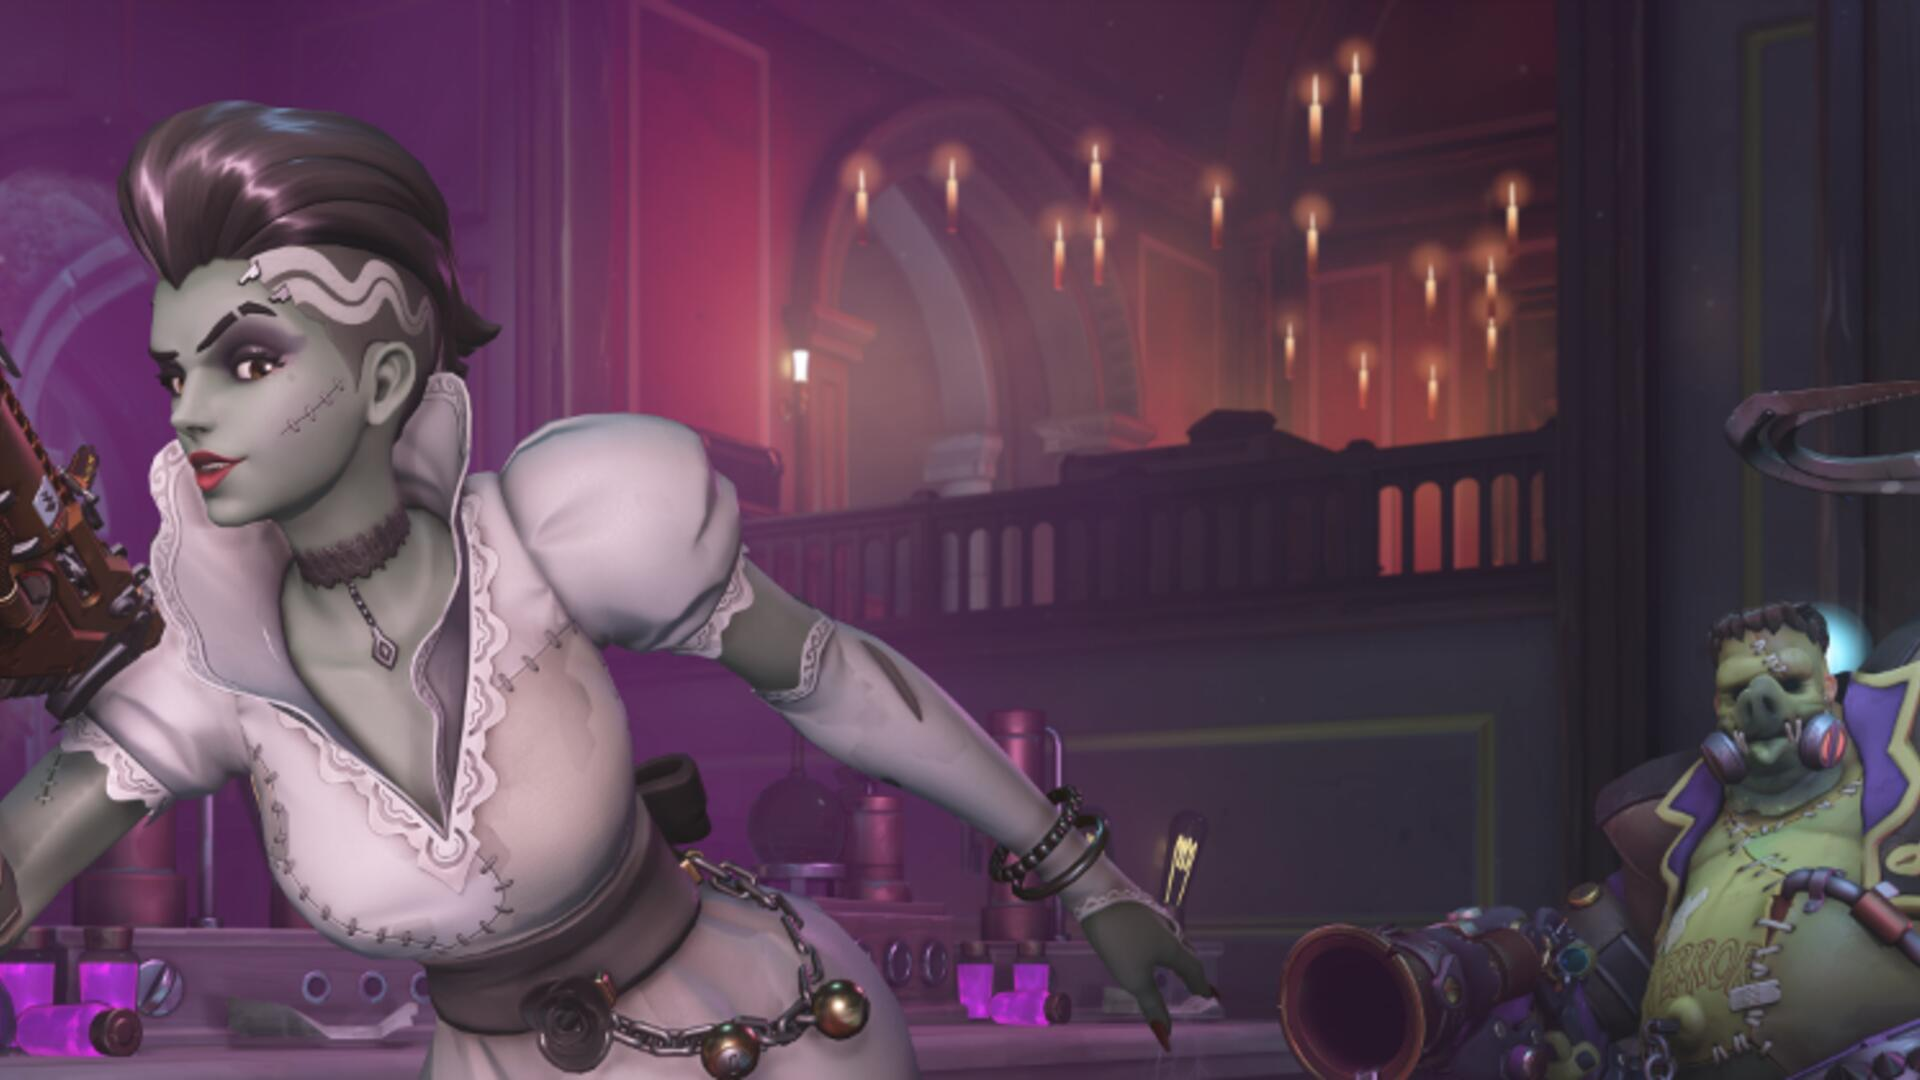 Overwatch Halloween Terror Event Live Now, New Skins for Sombra, Soldier: 76, and More